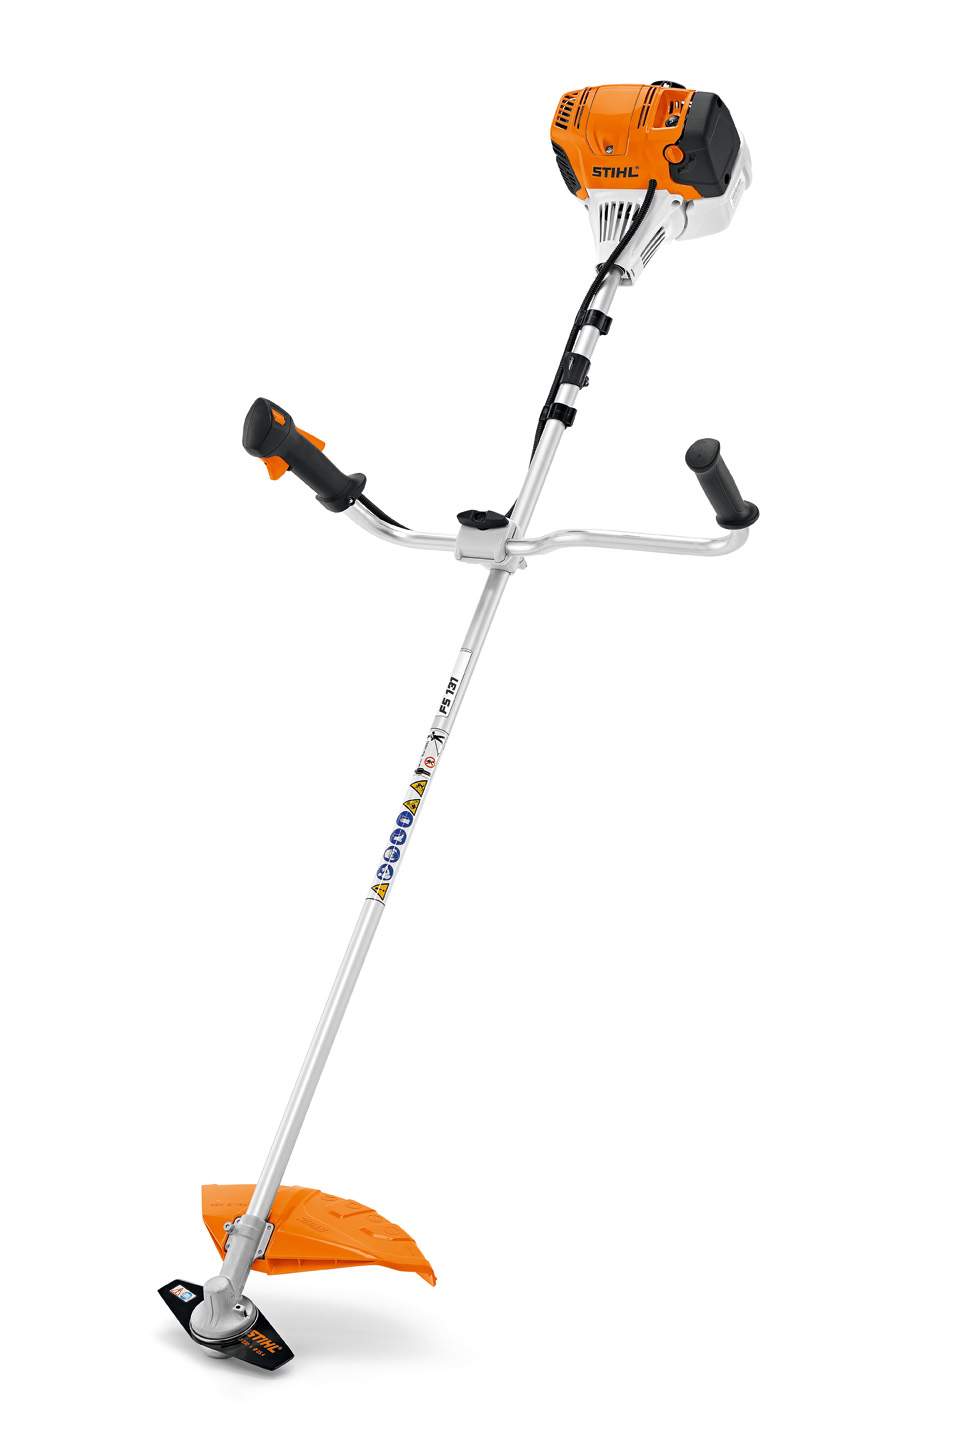 FS 131 - 1.4 KW / 1.9 HP HIGH-PERFORMANCE PROFESSIONAL BRUSHCUTTER